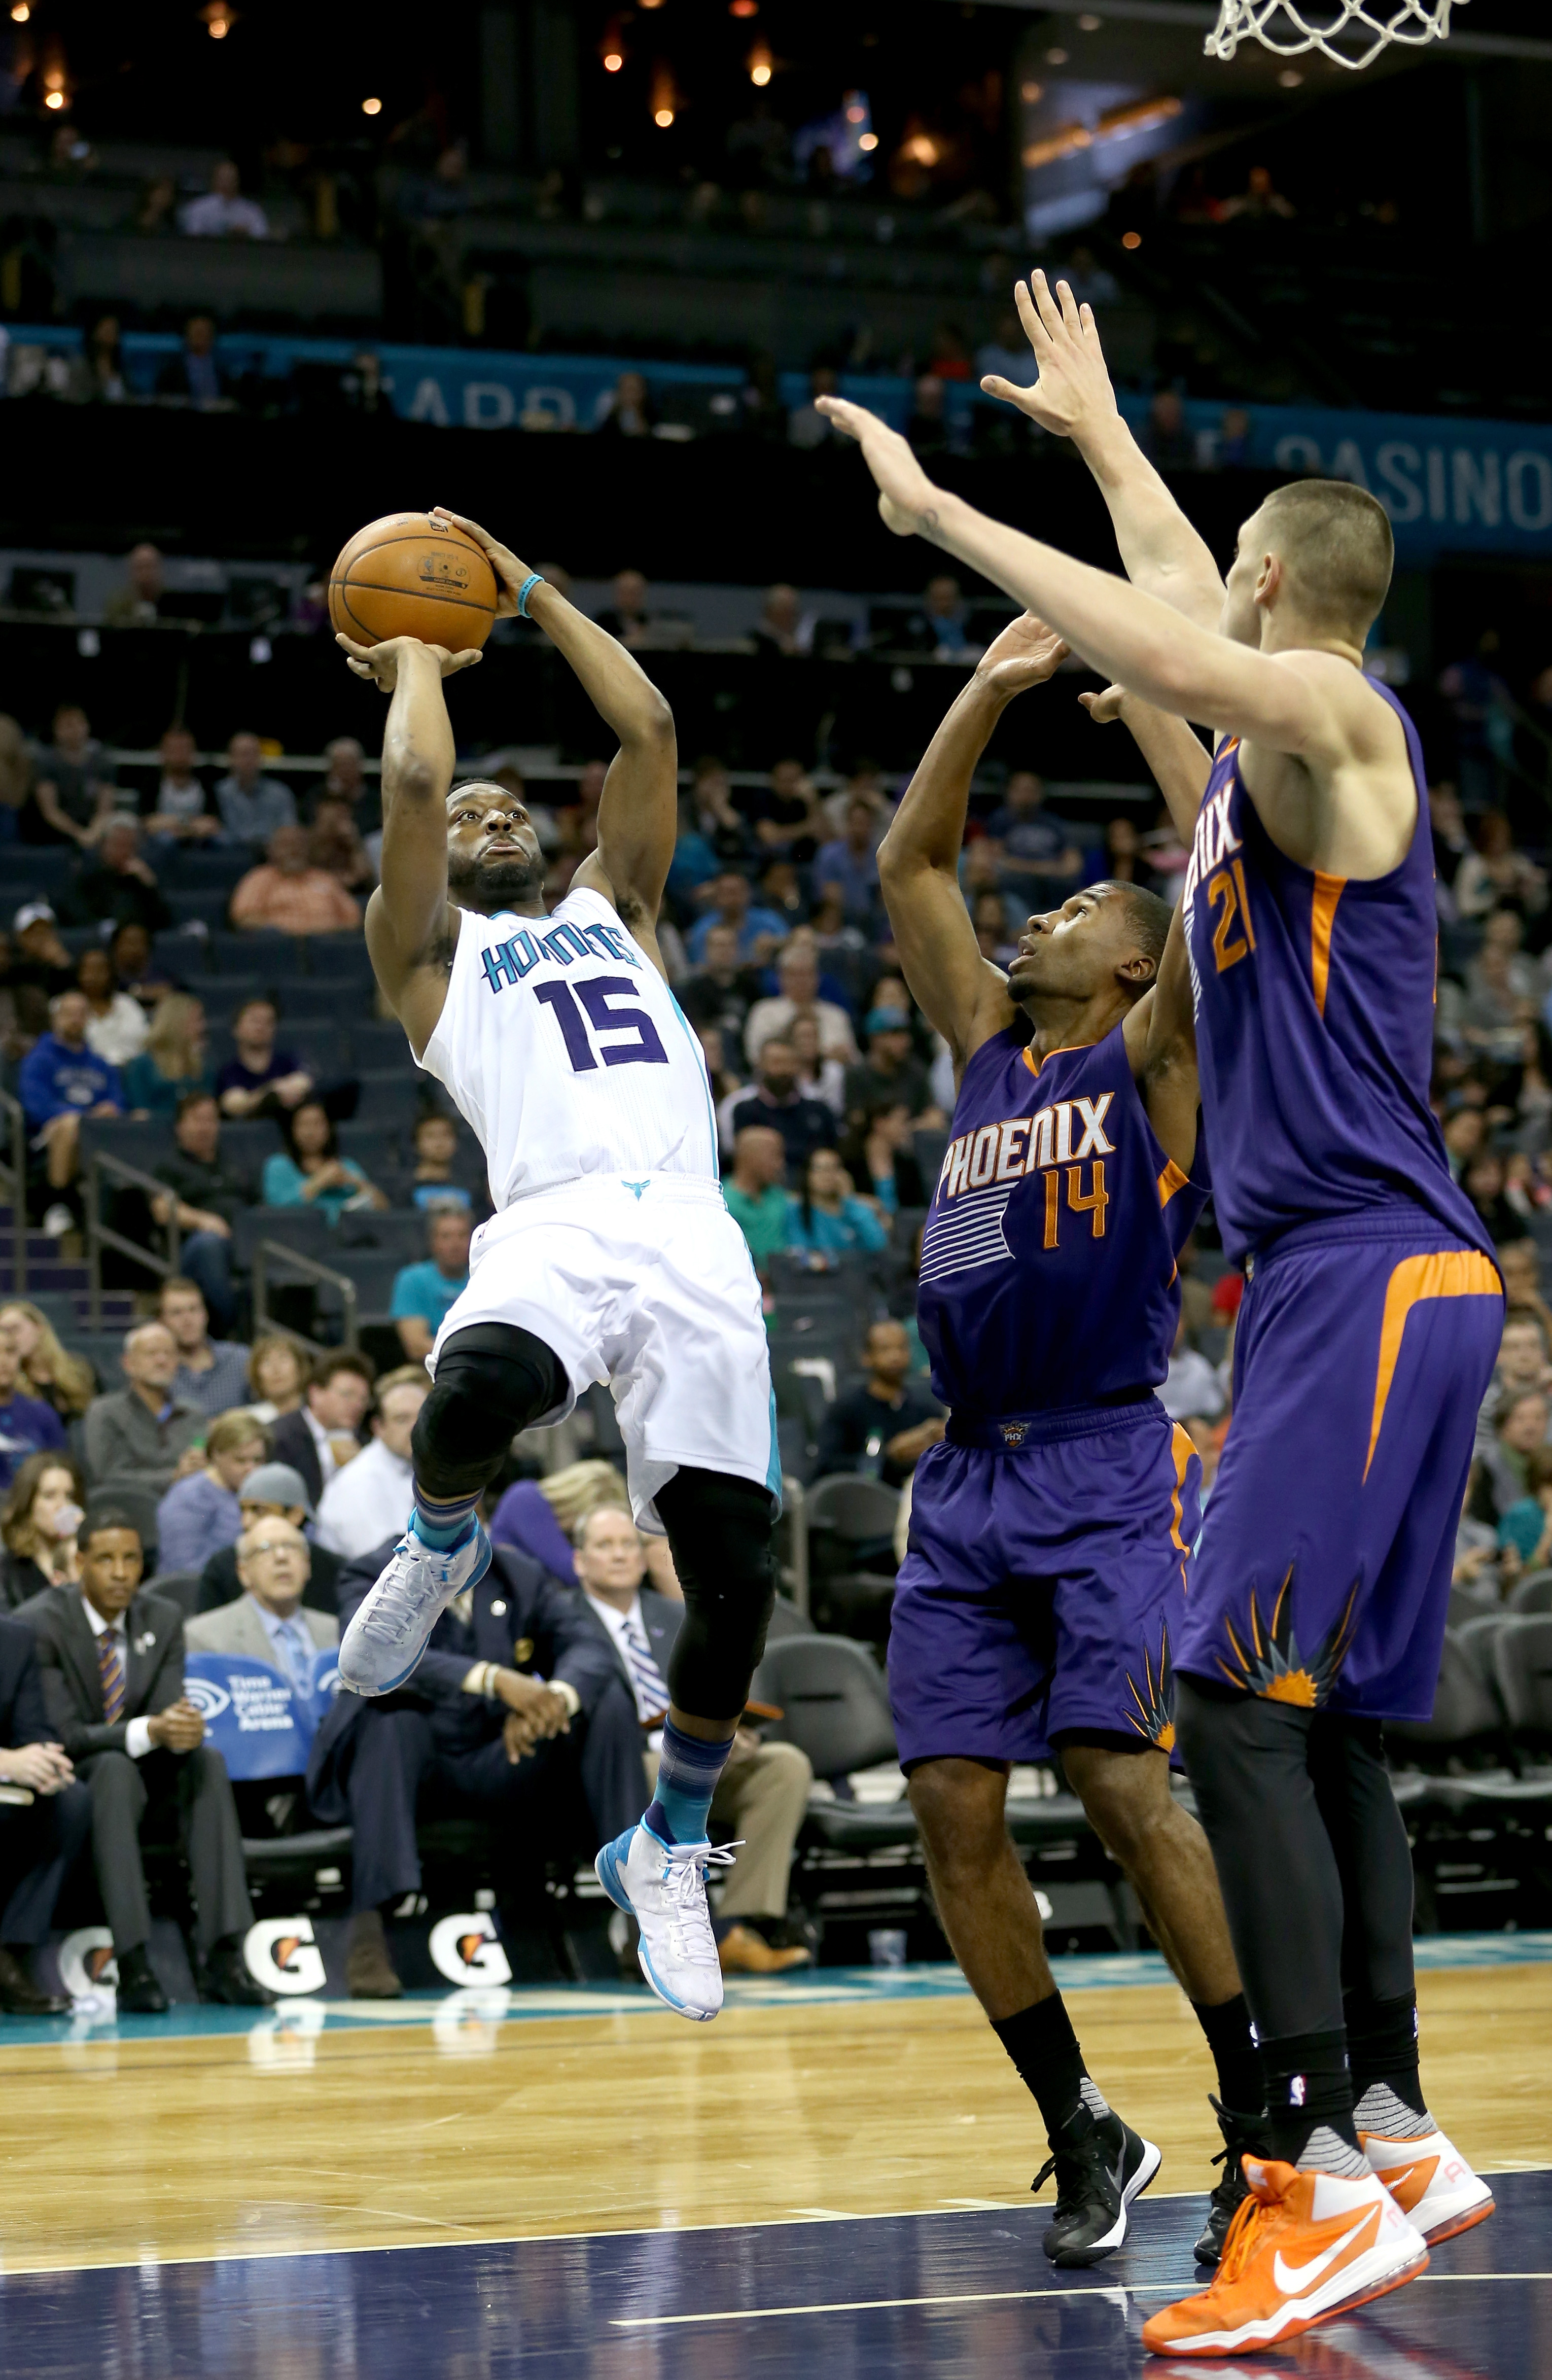 CHARLOTTE, NC - MARCH 01:  Kemba Walker #15 of the Charlotte Hornets shoots over Ronnie Price #14 of the Phoenix Suns during their game at Time Warner Cable Arena on March 1, 2016 in Charlotte, North Carolina.  (Photo by Streeter Lecka/Getty Images)